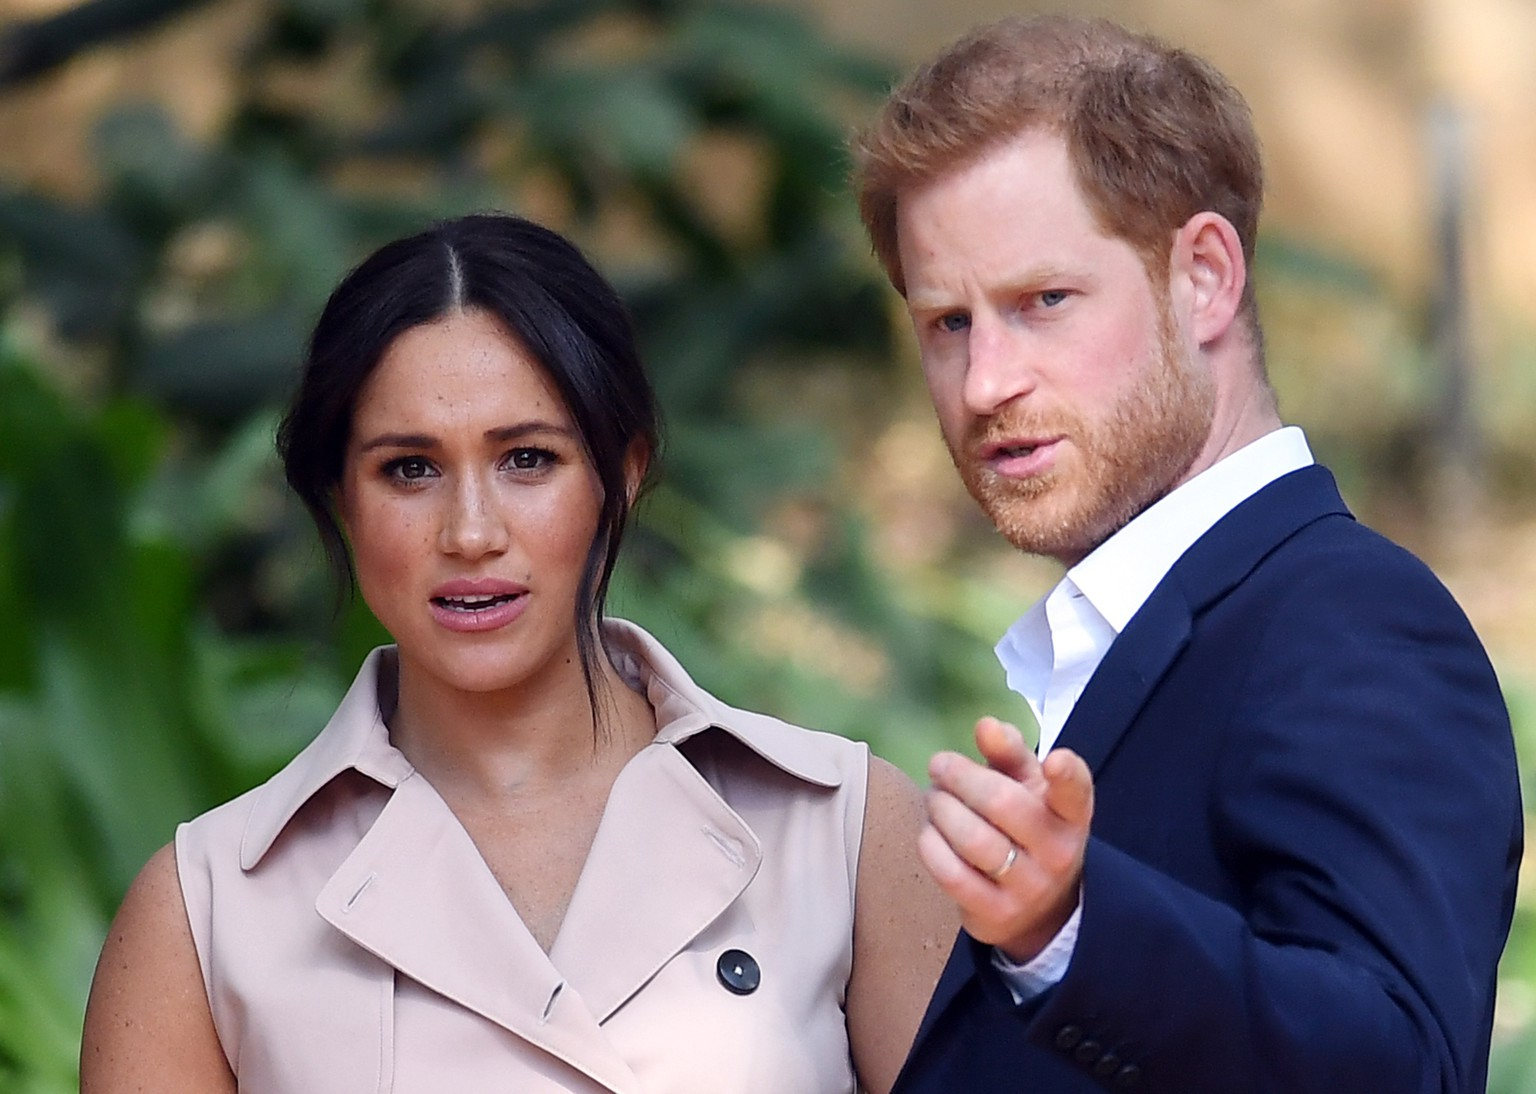 epa07889137 Britain's Prince Harry (R), the Duke of Sussex, and his wife Meghan (L), the Duchess of Sussex, attend a creative industries and business reception at the High Commissioner's residence in Johannesburg, South Africa, 02 October 2019. The Duke and Duchess of Sussex are on an official visit to South Africa that concludes later the same day.  EPA/FACUNDO ARRIZABALAGA